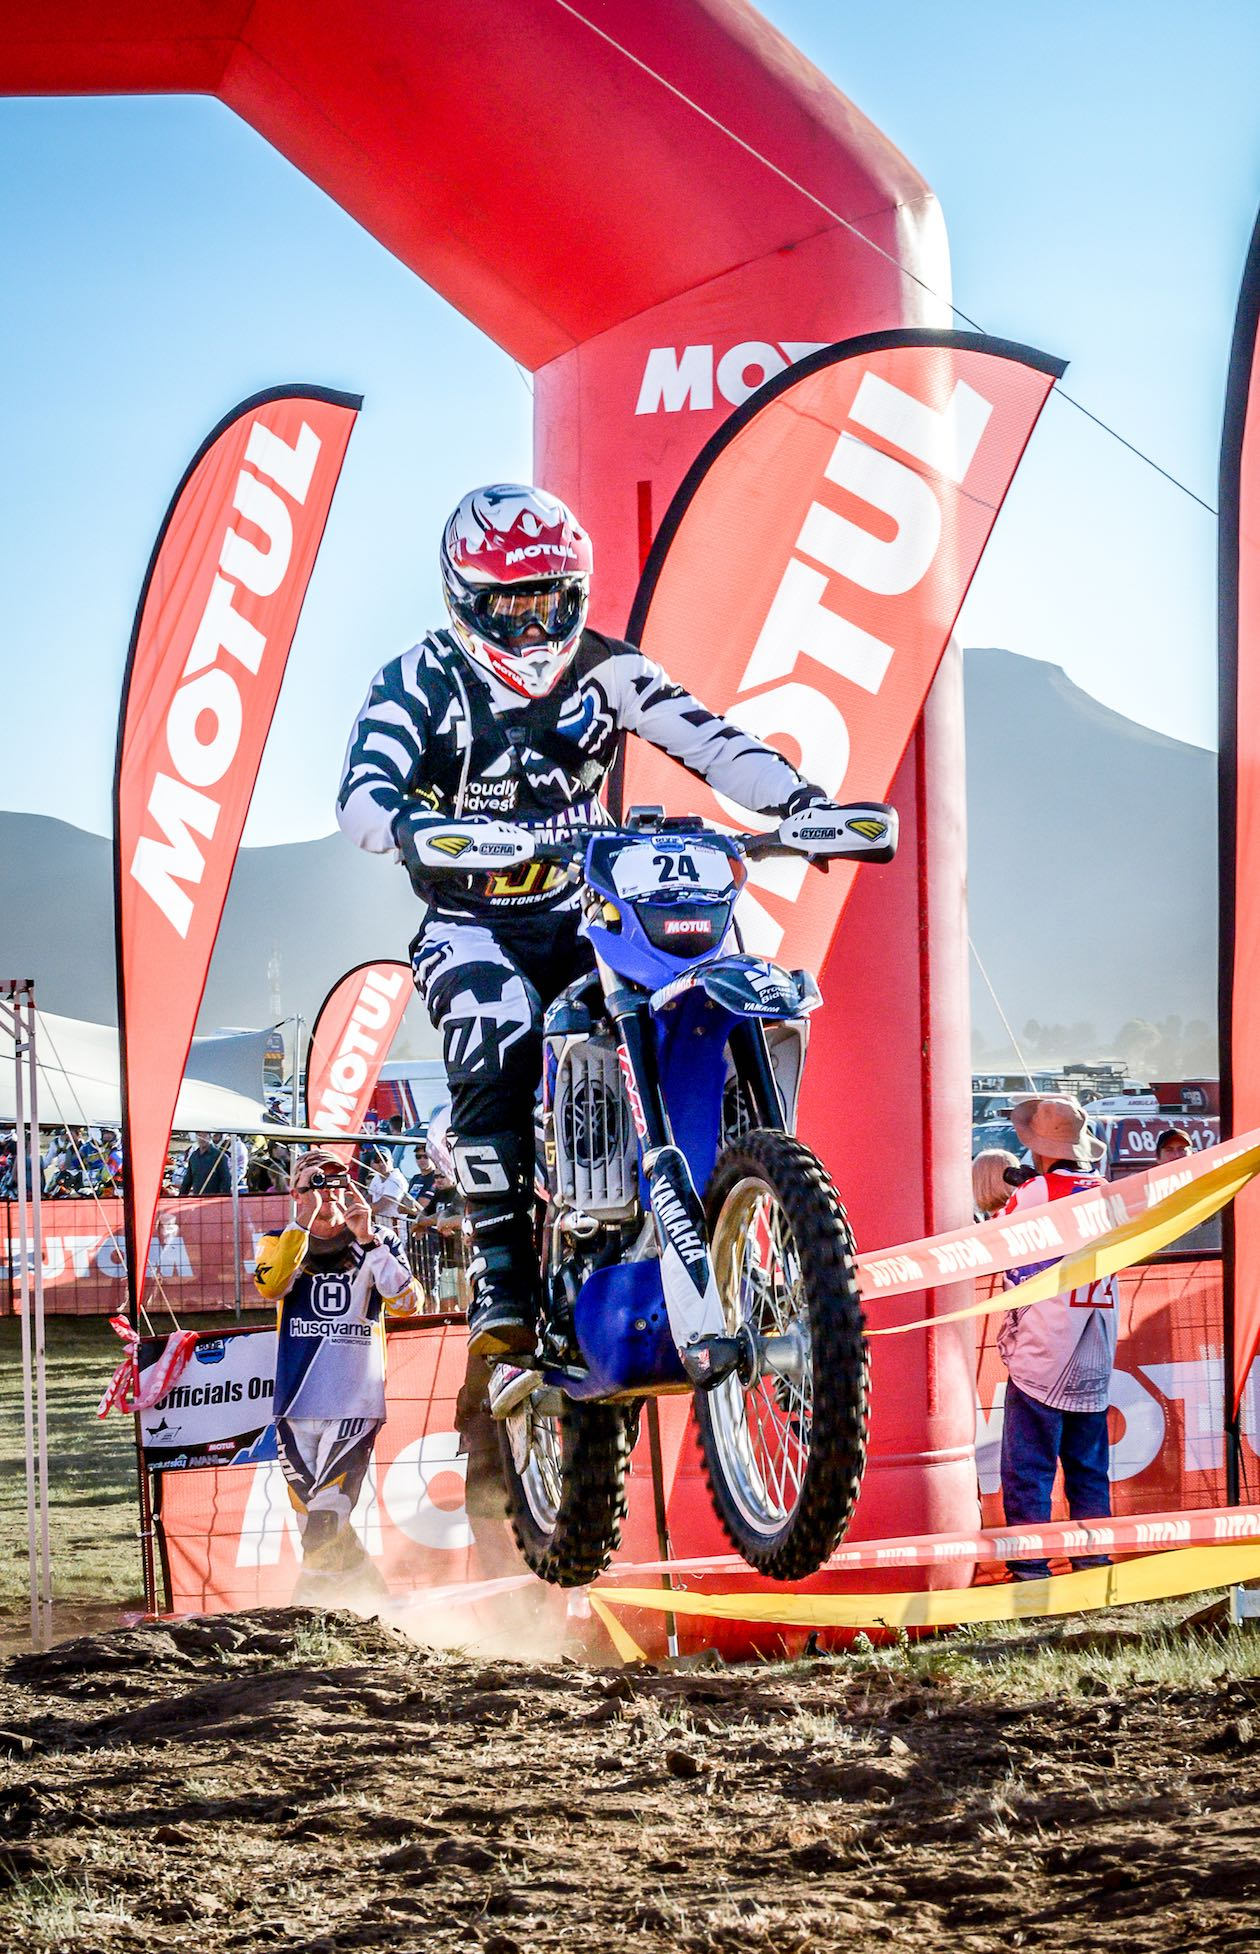 Riders competing in the Motul Roof of Africa Hard Enduro